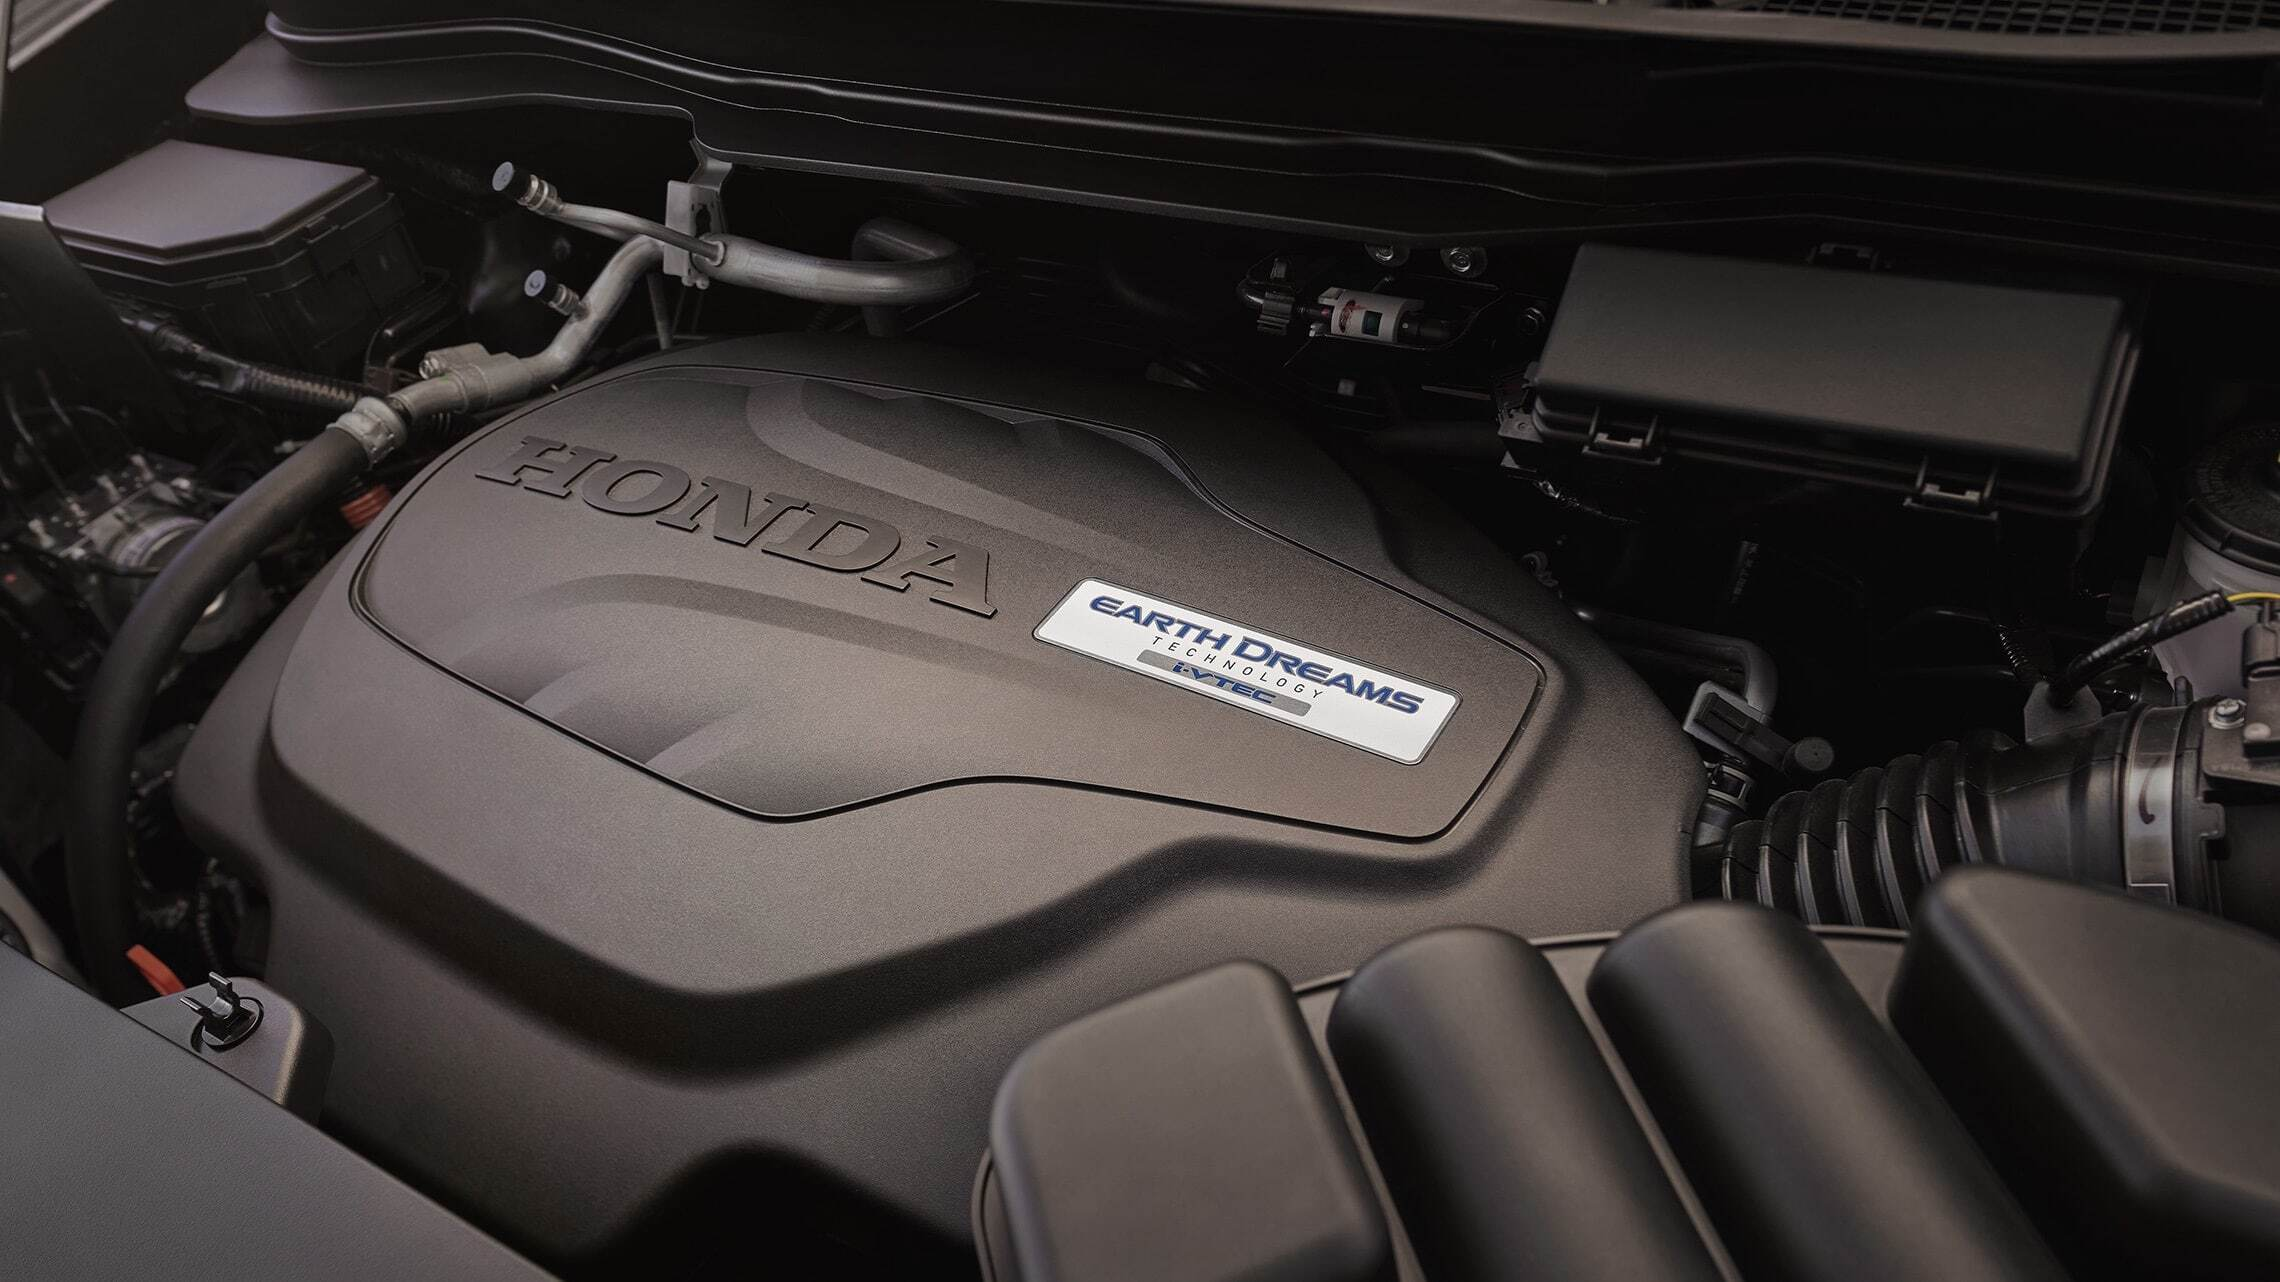 Honda Passport's 280-Horsepower 3.5-Liter V6 Engine